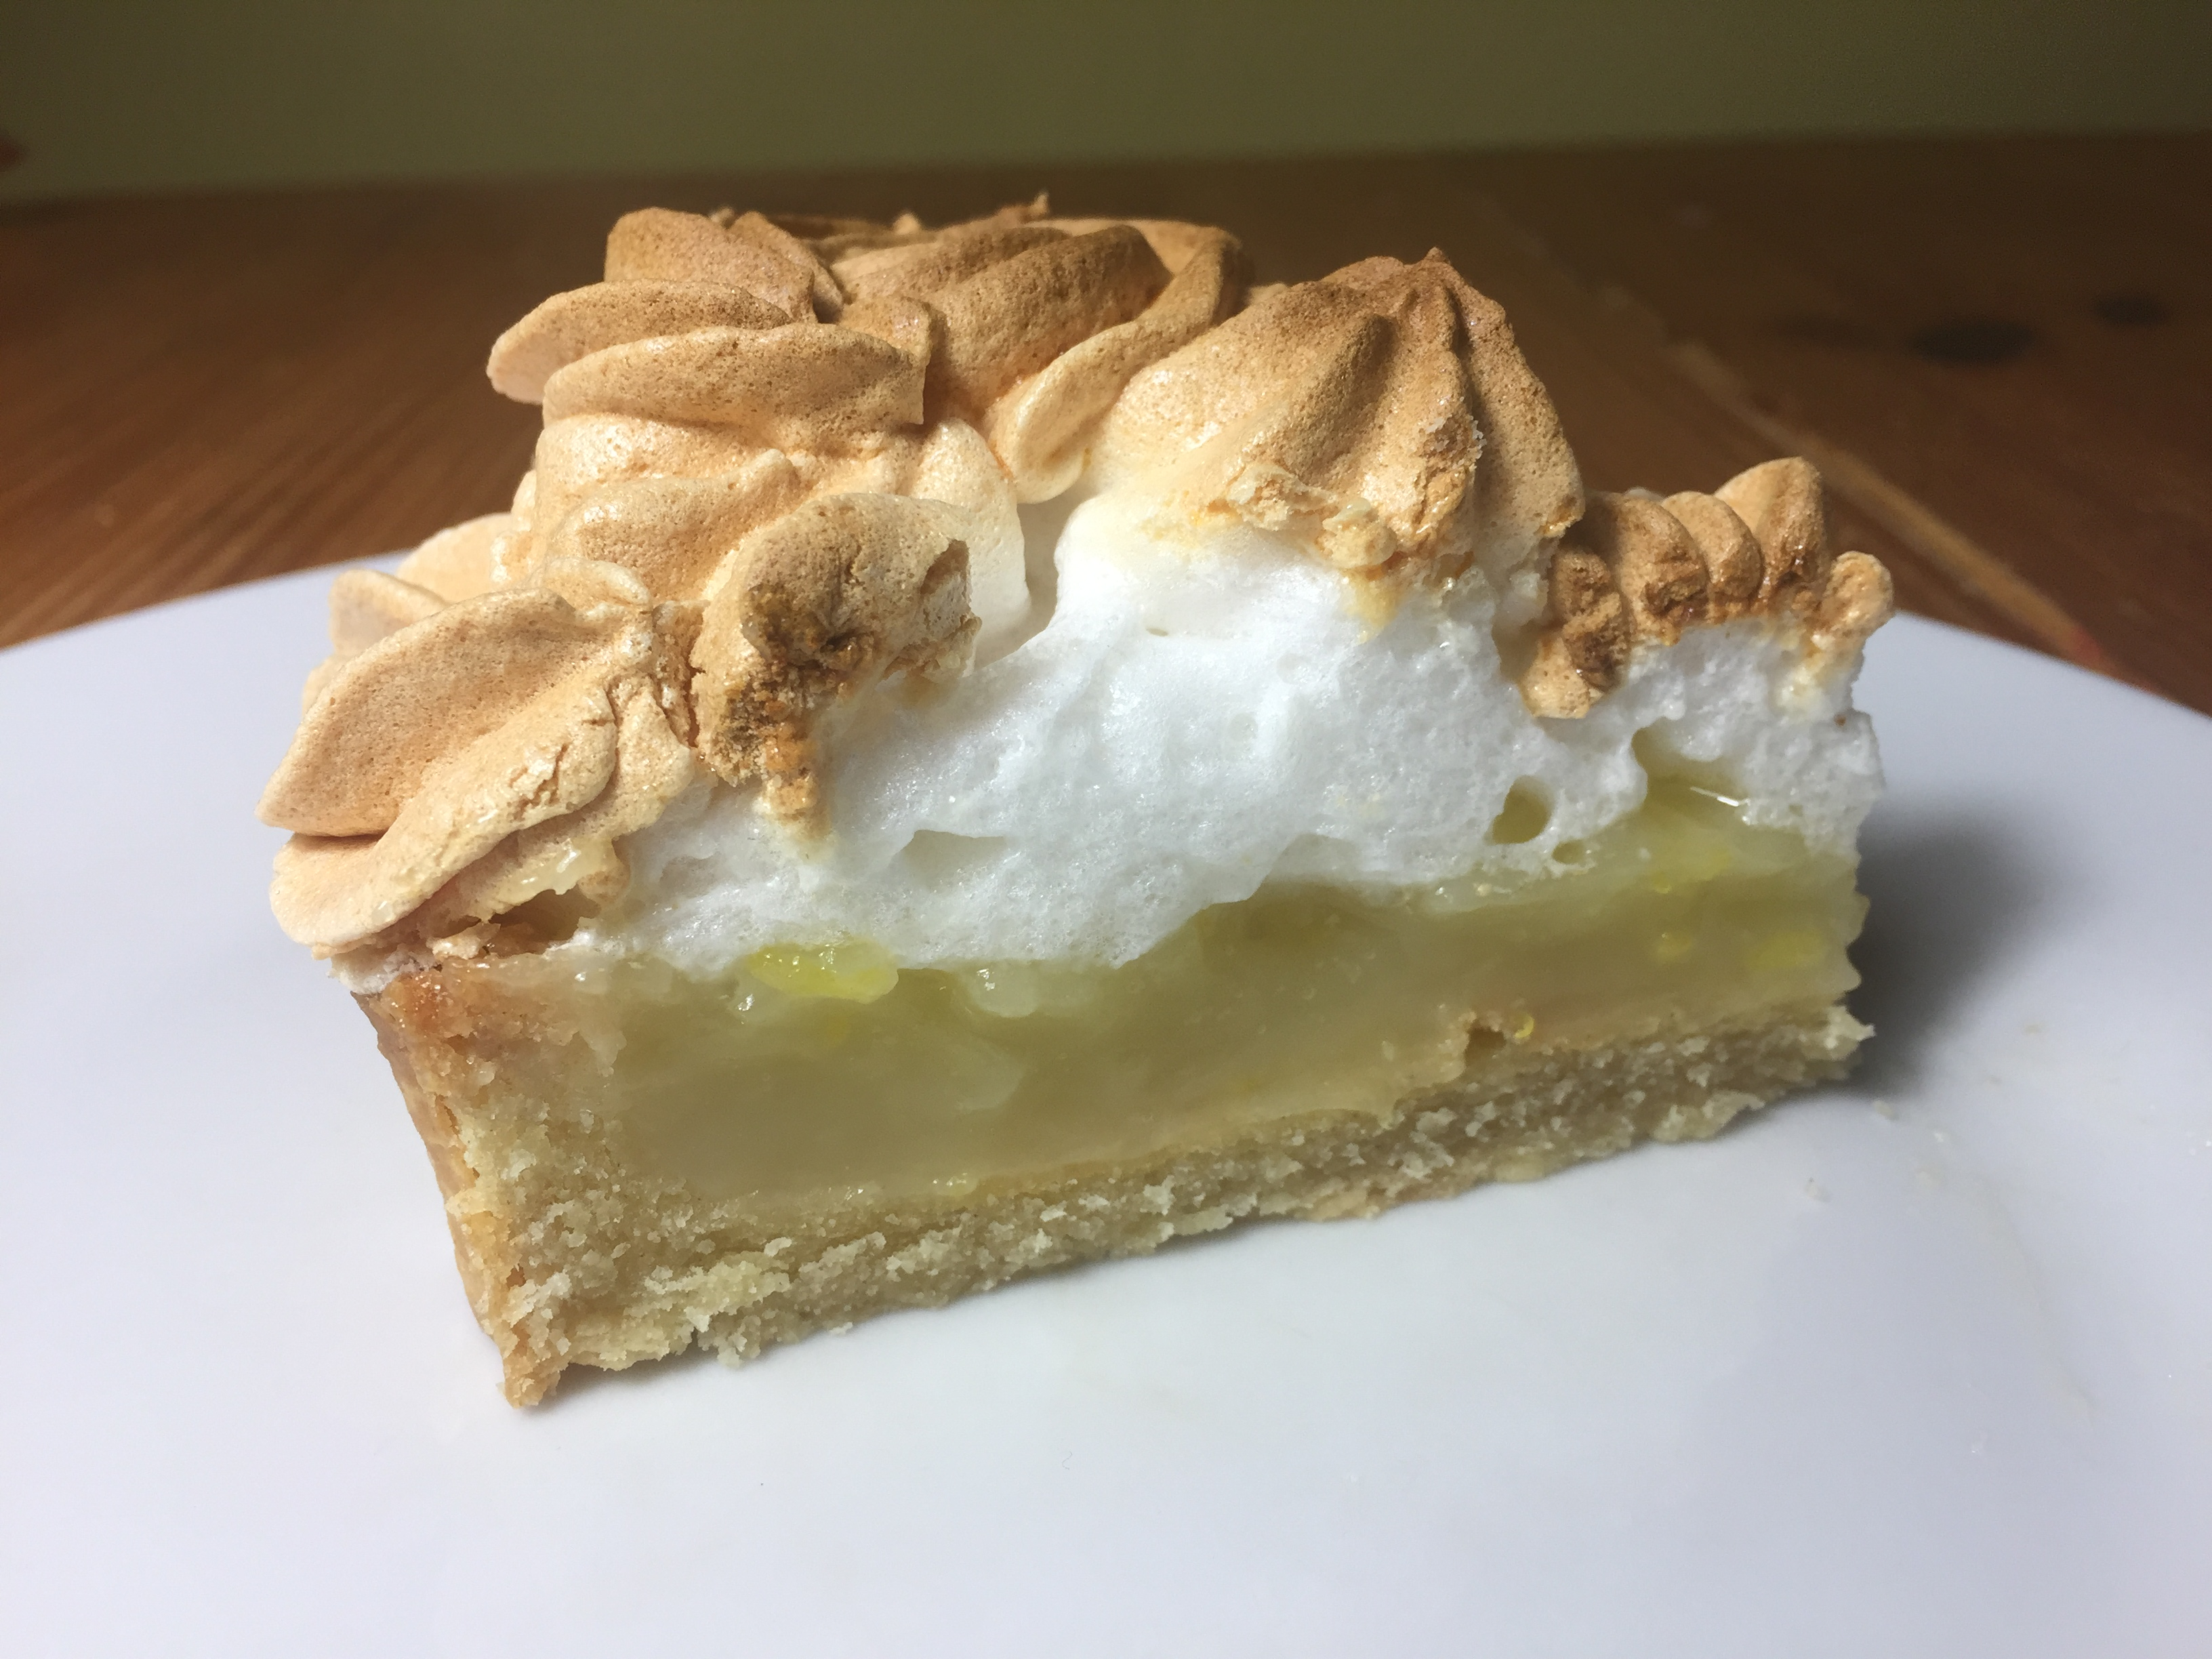 Lemon meringue pie - meadow brown bakery